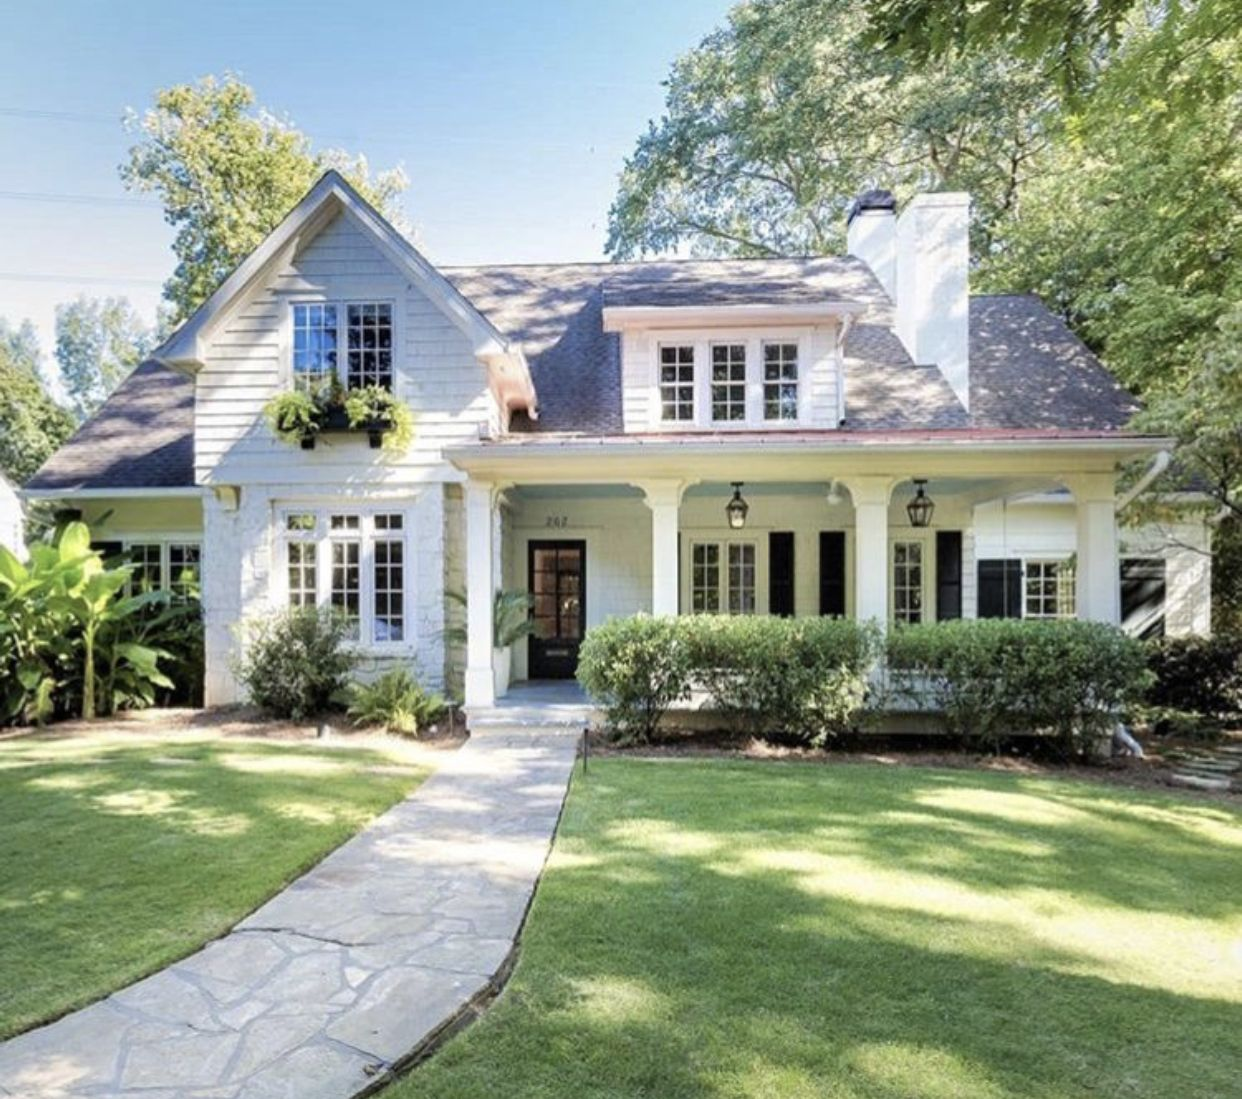 Pin By Will Couch On House Plans Exteriors House Exterior Dream House Exterior House Design